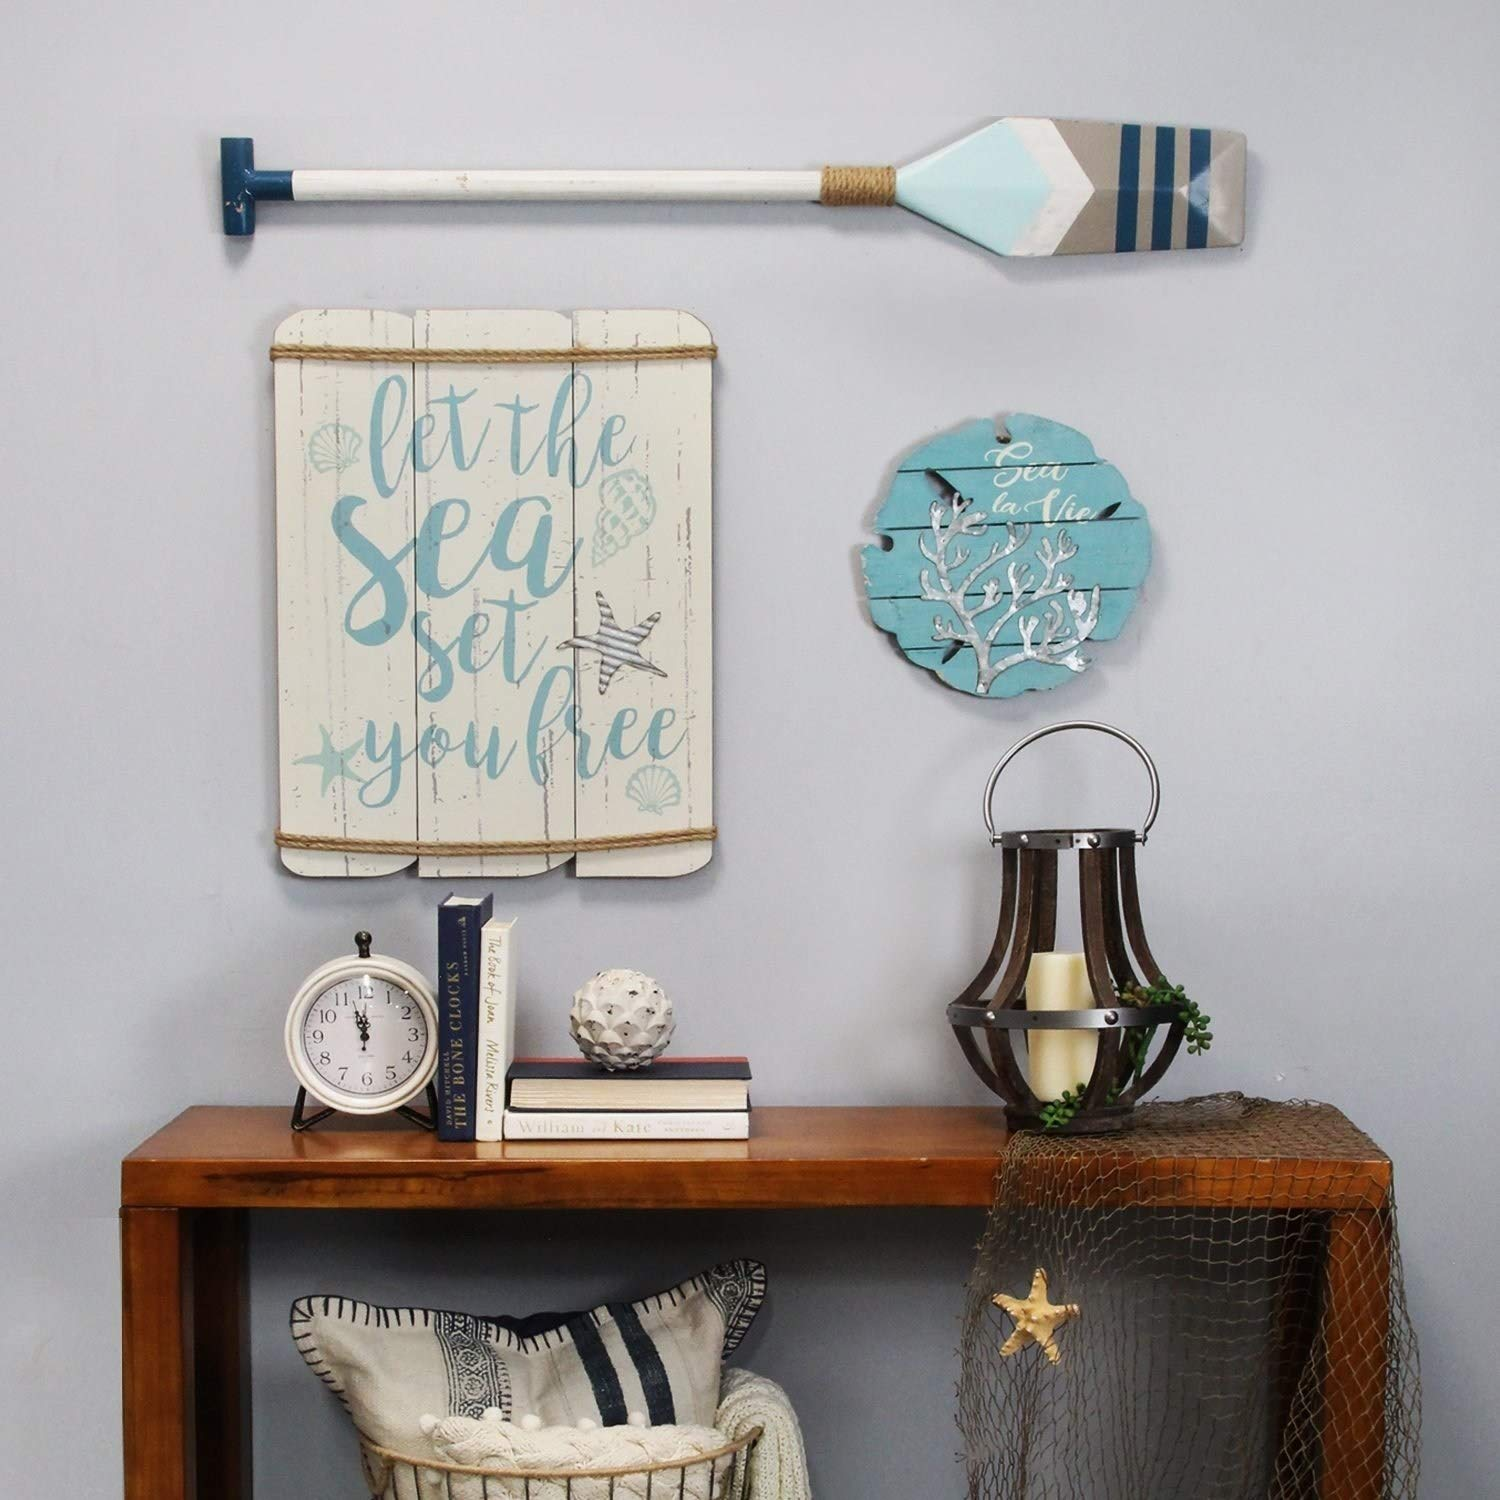 Beach Theme Sayings Let Sea Set You Free Decorative Wall Sign Aqua Blue Seashells Distressed White Wood Plank Jute Rope Metal Starfish Accents